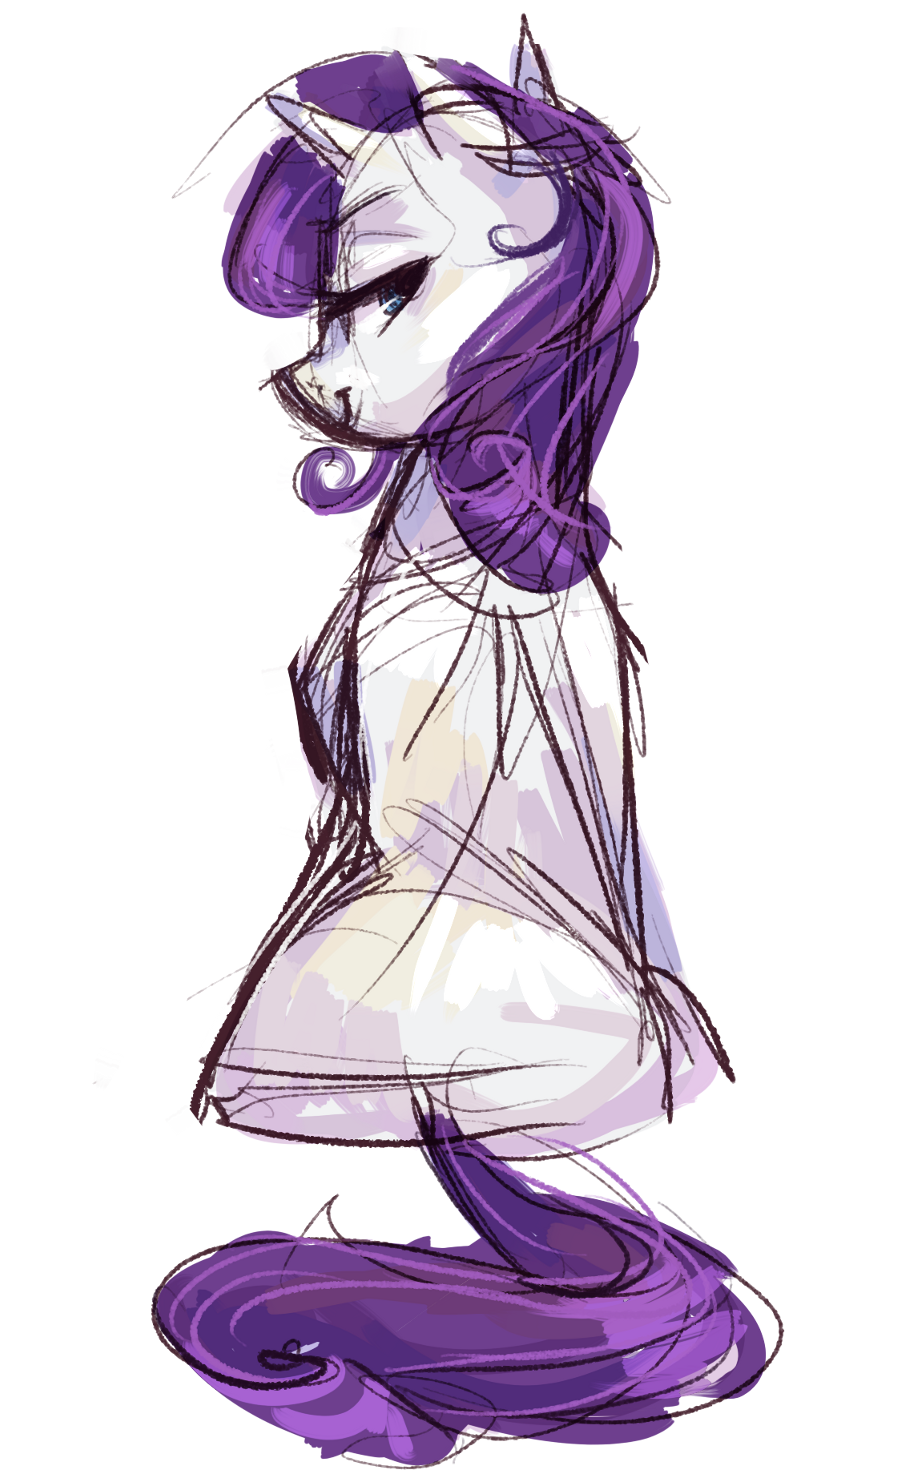 Rarity By Johling On Deviantart I Am A Lady And I Wish To Be